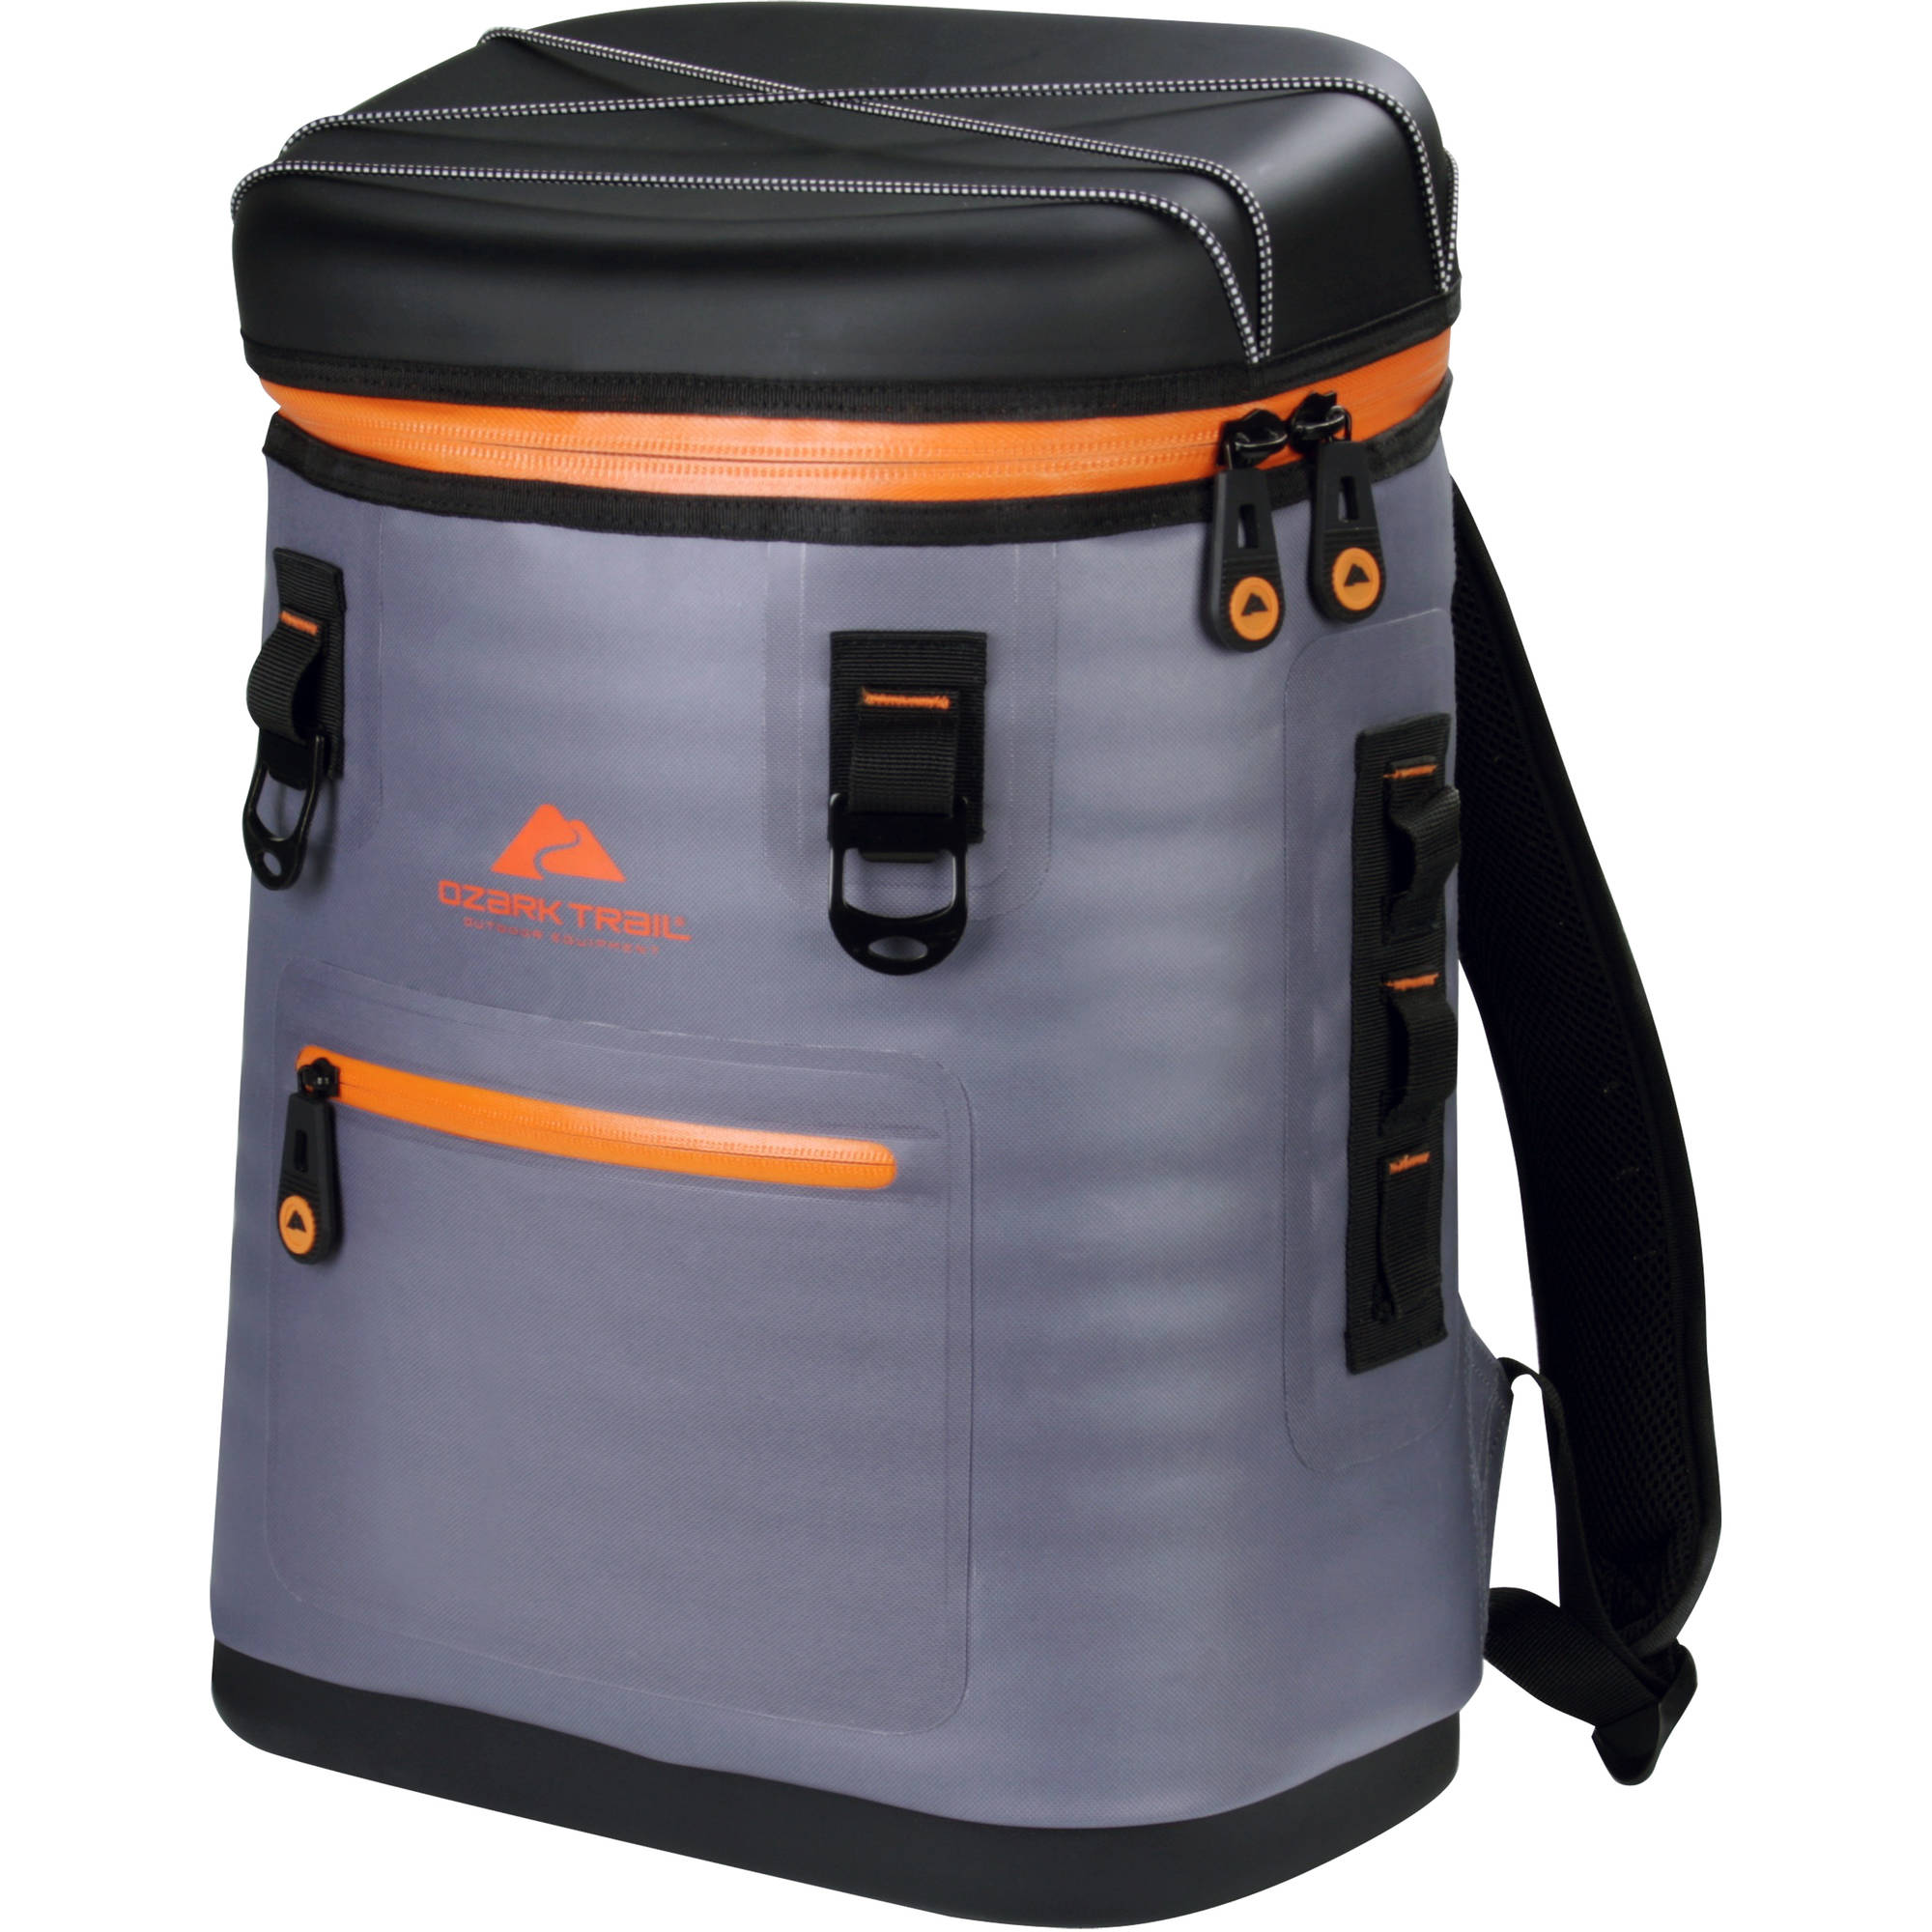 Ozark Trail Premium Backpack Cooler - Walmart.com